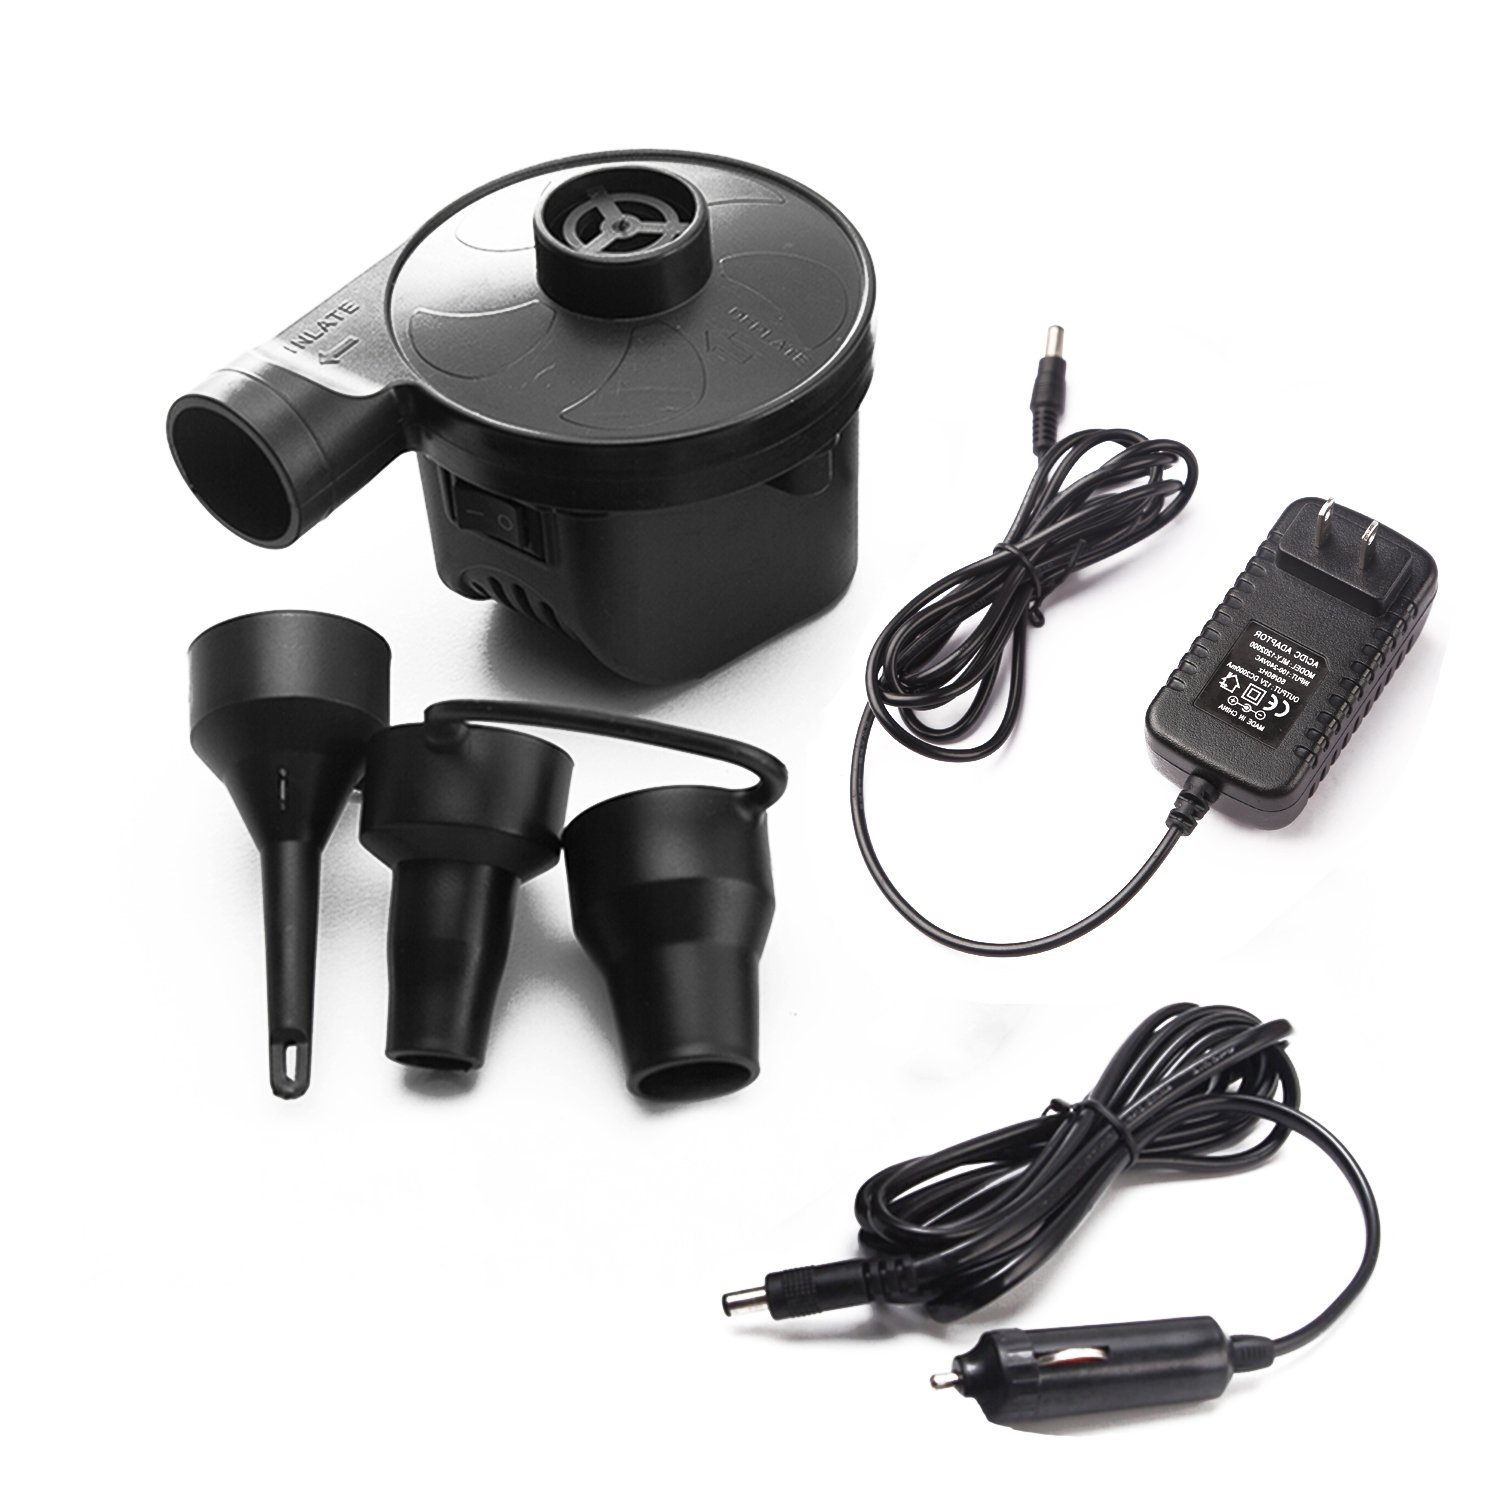 ELE KING Portable Quick-Fill 2 in 1 110V AC/12V DC Camping Travel Pump with 3 Nozzles and 2 Chargers for Air Mattress Raft Bed Boat Pool Toy Float, Black